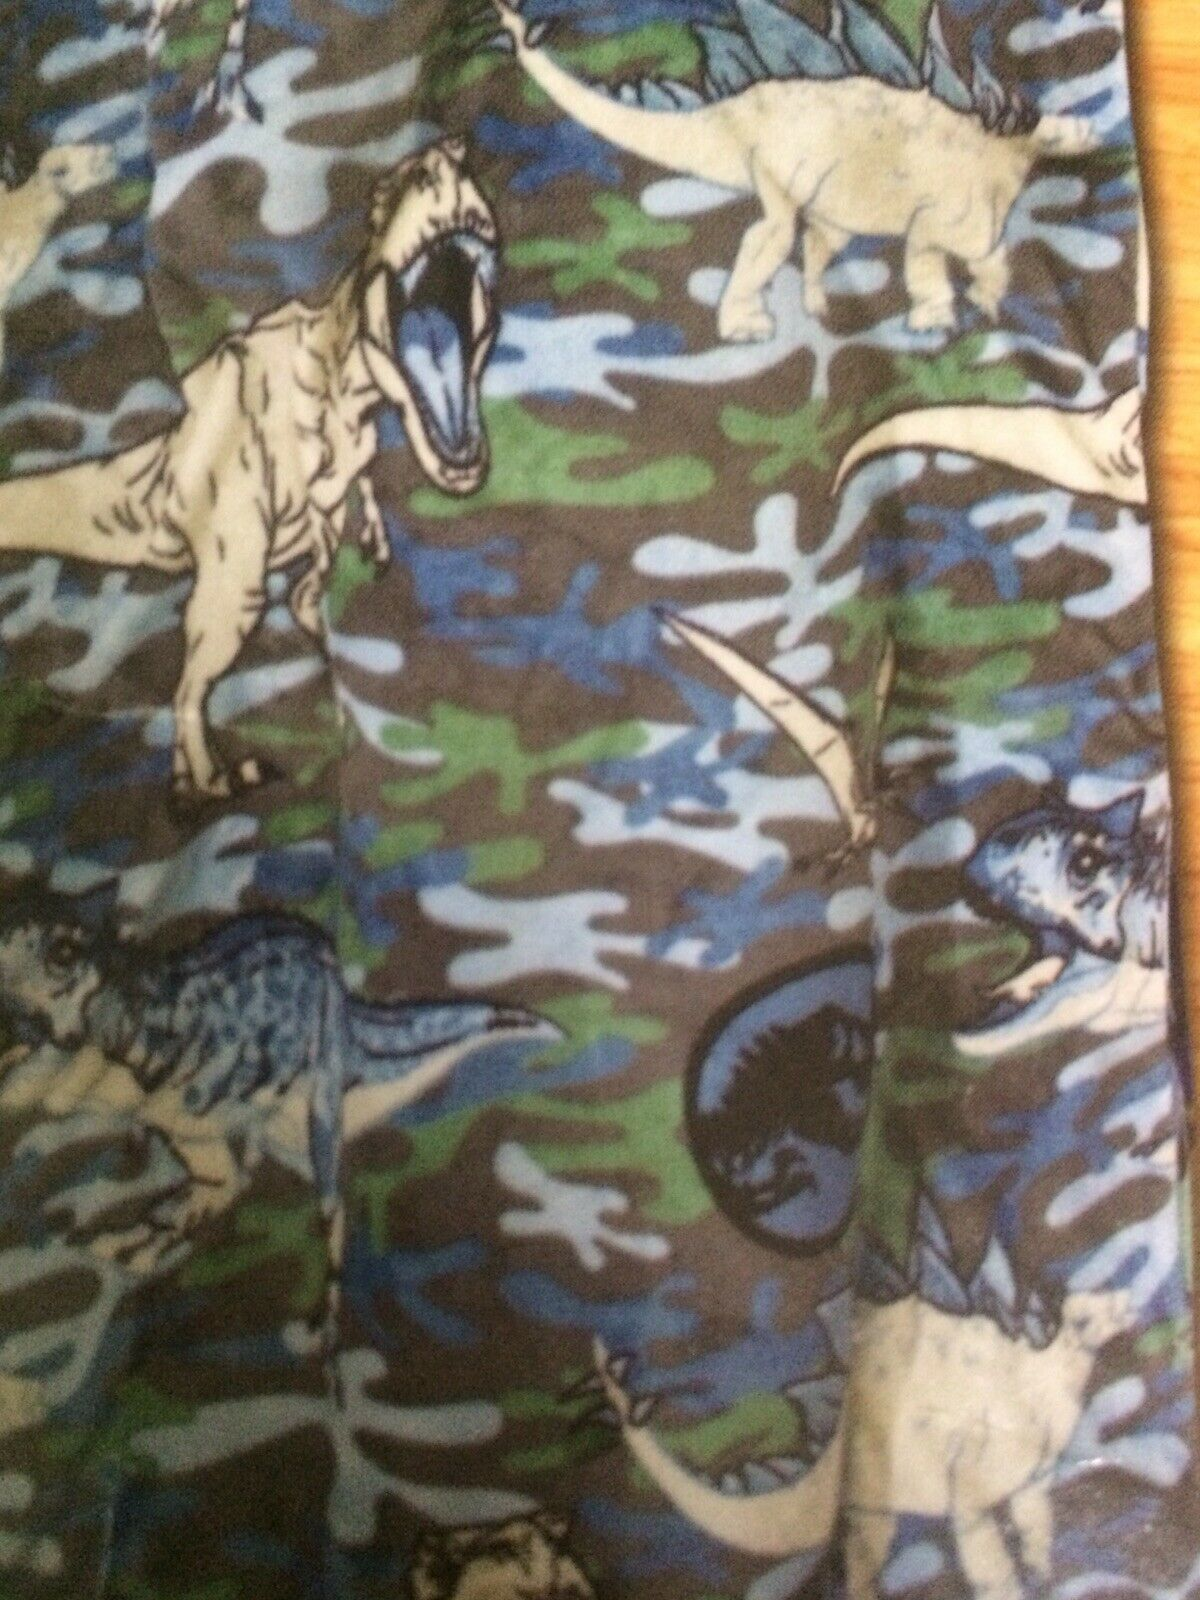 Boy Throw Blanket Jurassic World Dinosaur Blanket Super Soft and Cuddly Hooded Step in Blanket 30 x 54